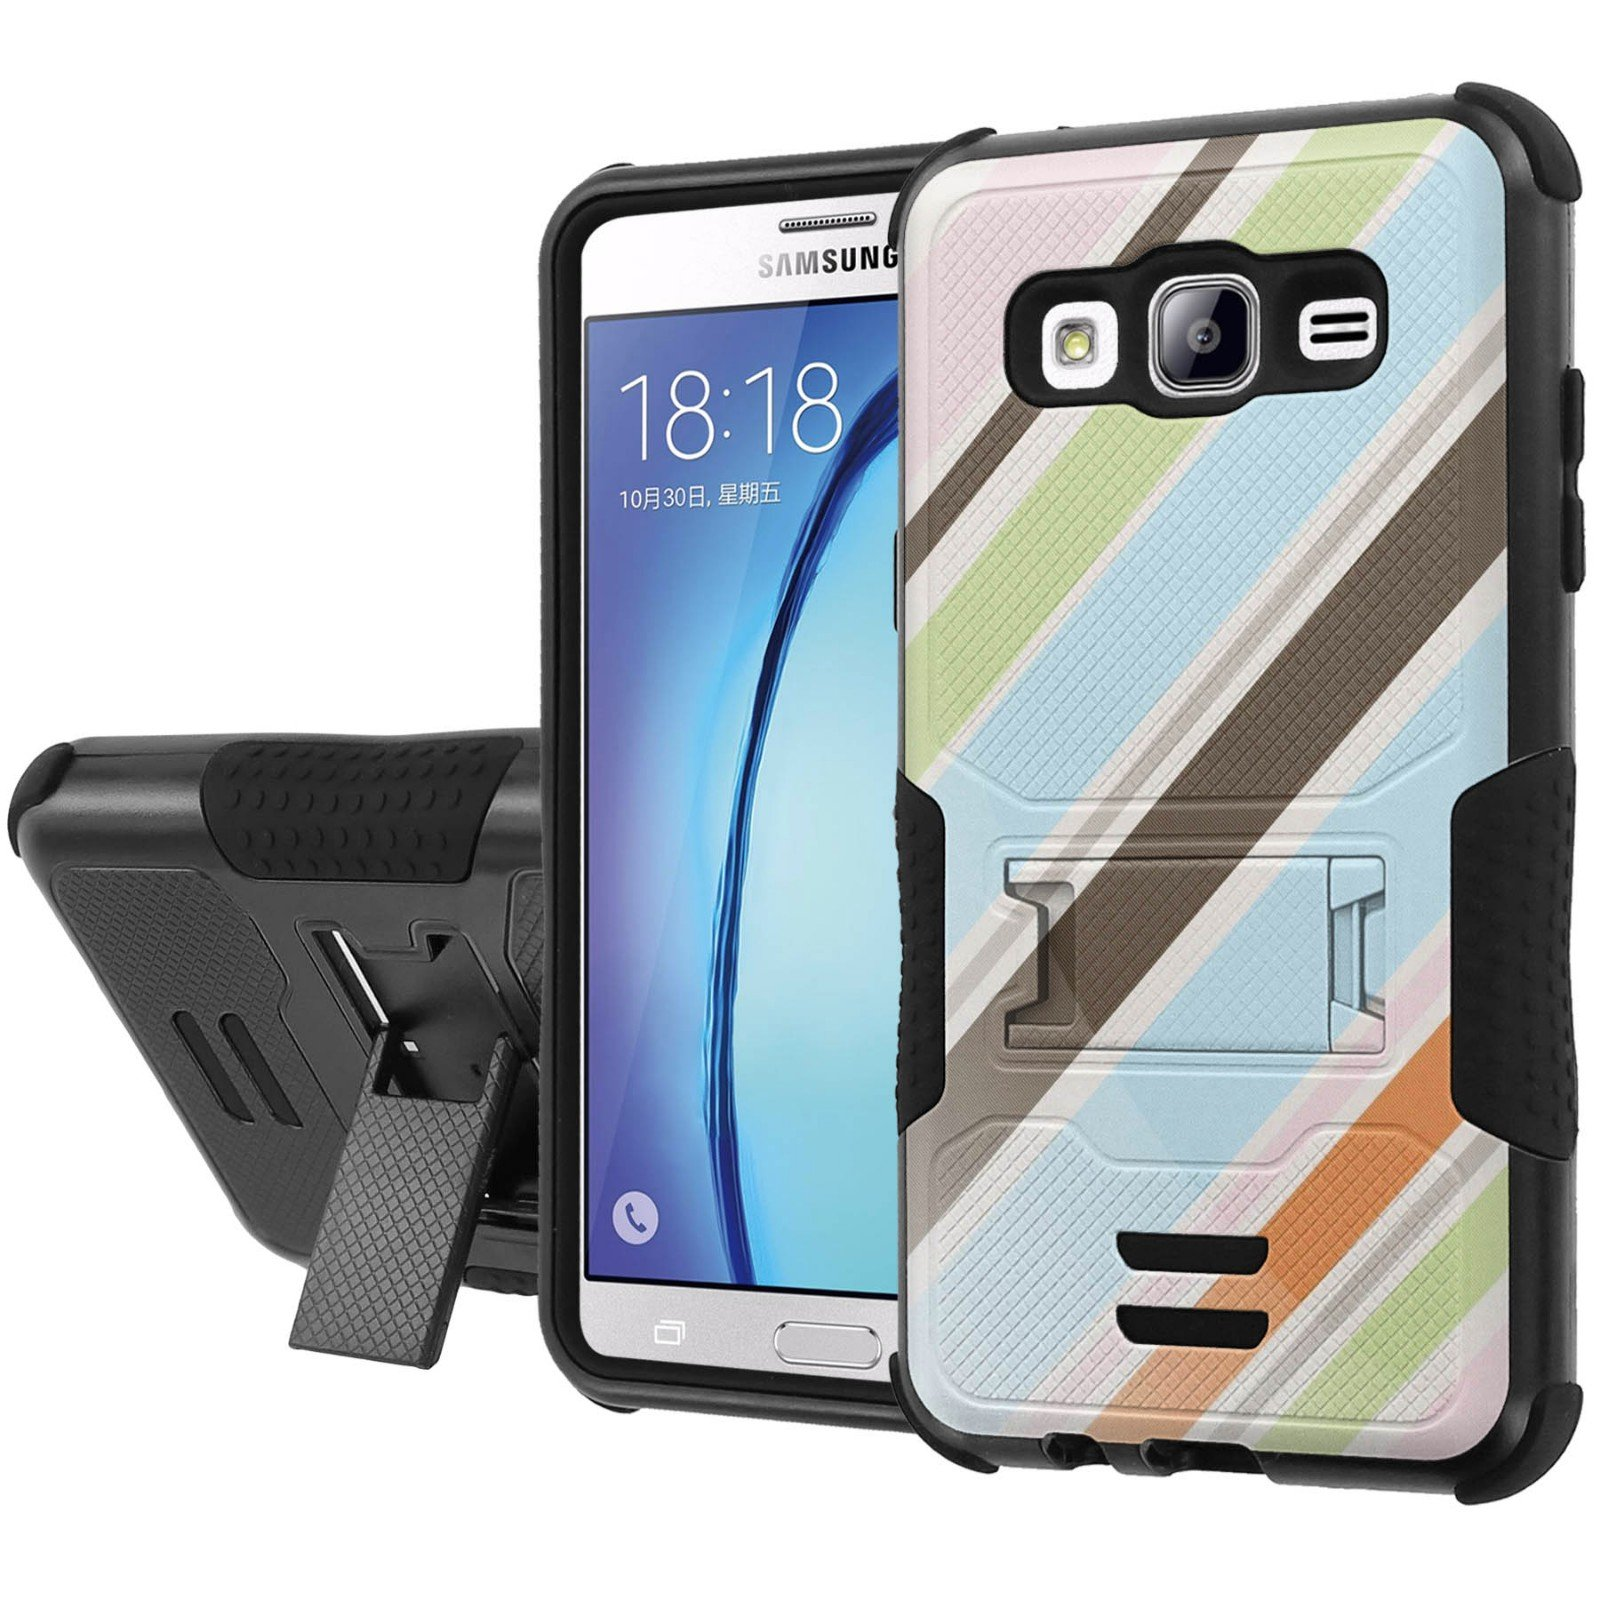 Galaxy [On5] Armor Case [NakedShield] [Black/Black] Urban Shockproof Defender [Kick Stand] - [Vertical Colors] for Samsung Galaxy [On5]